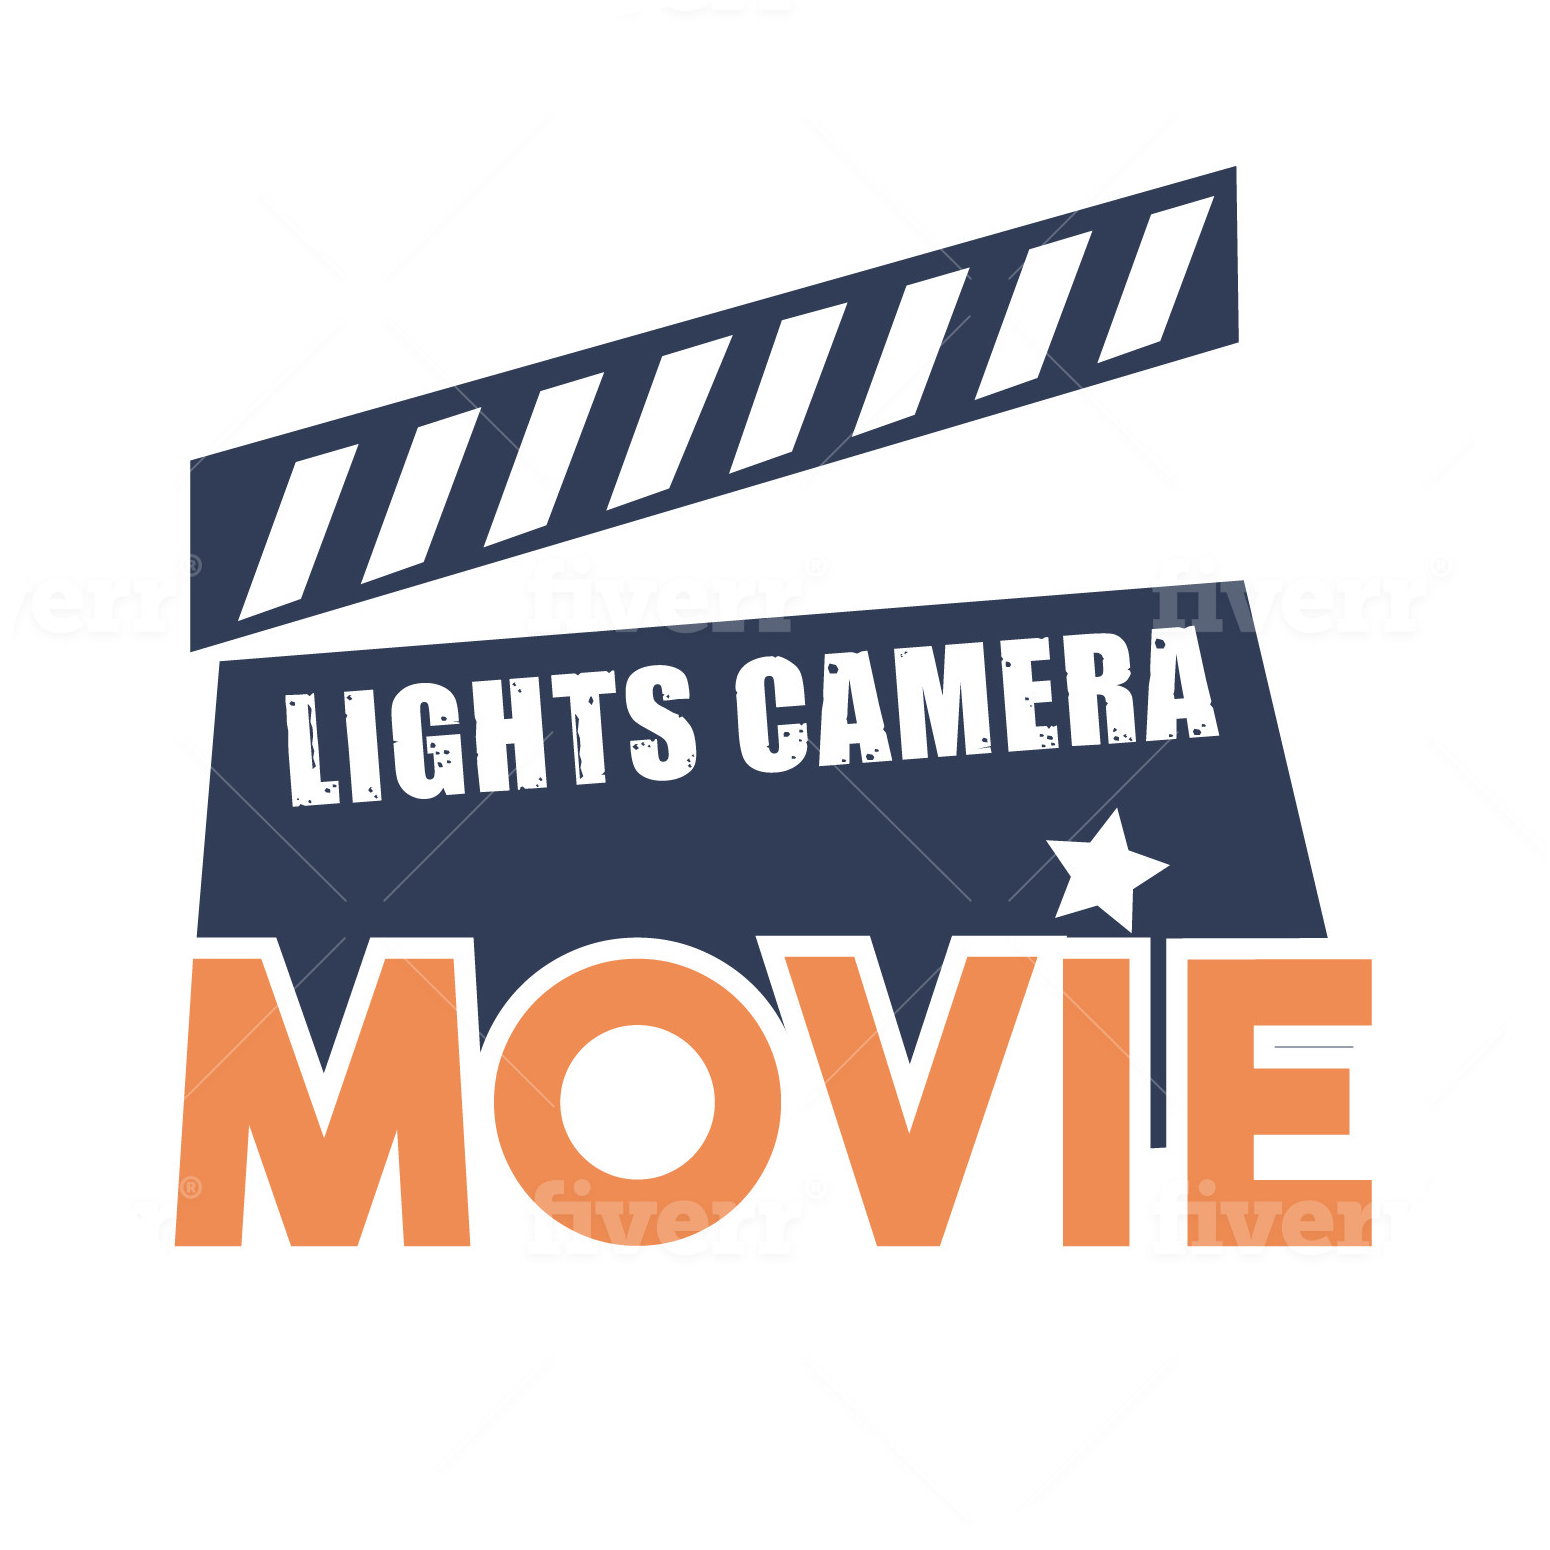 Lights Camera Movie